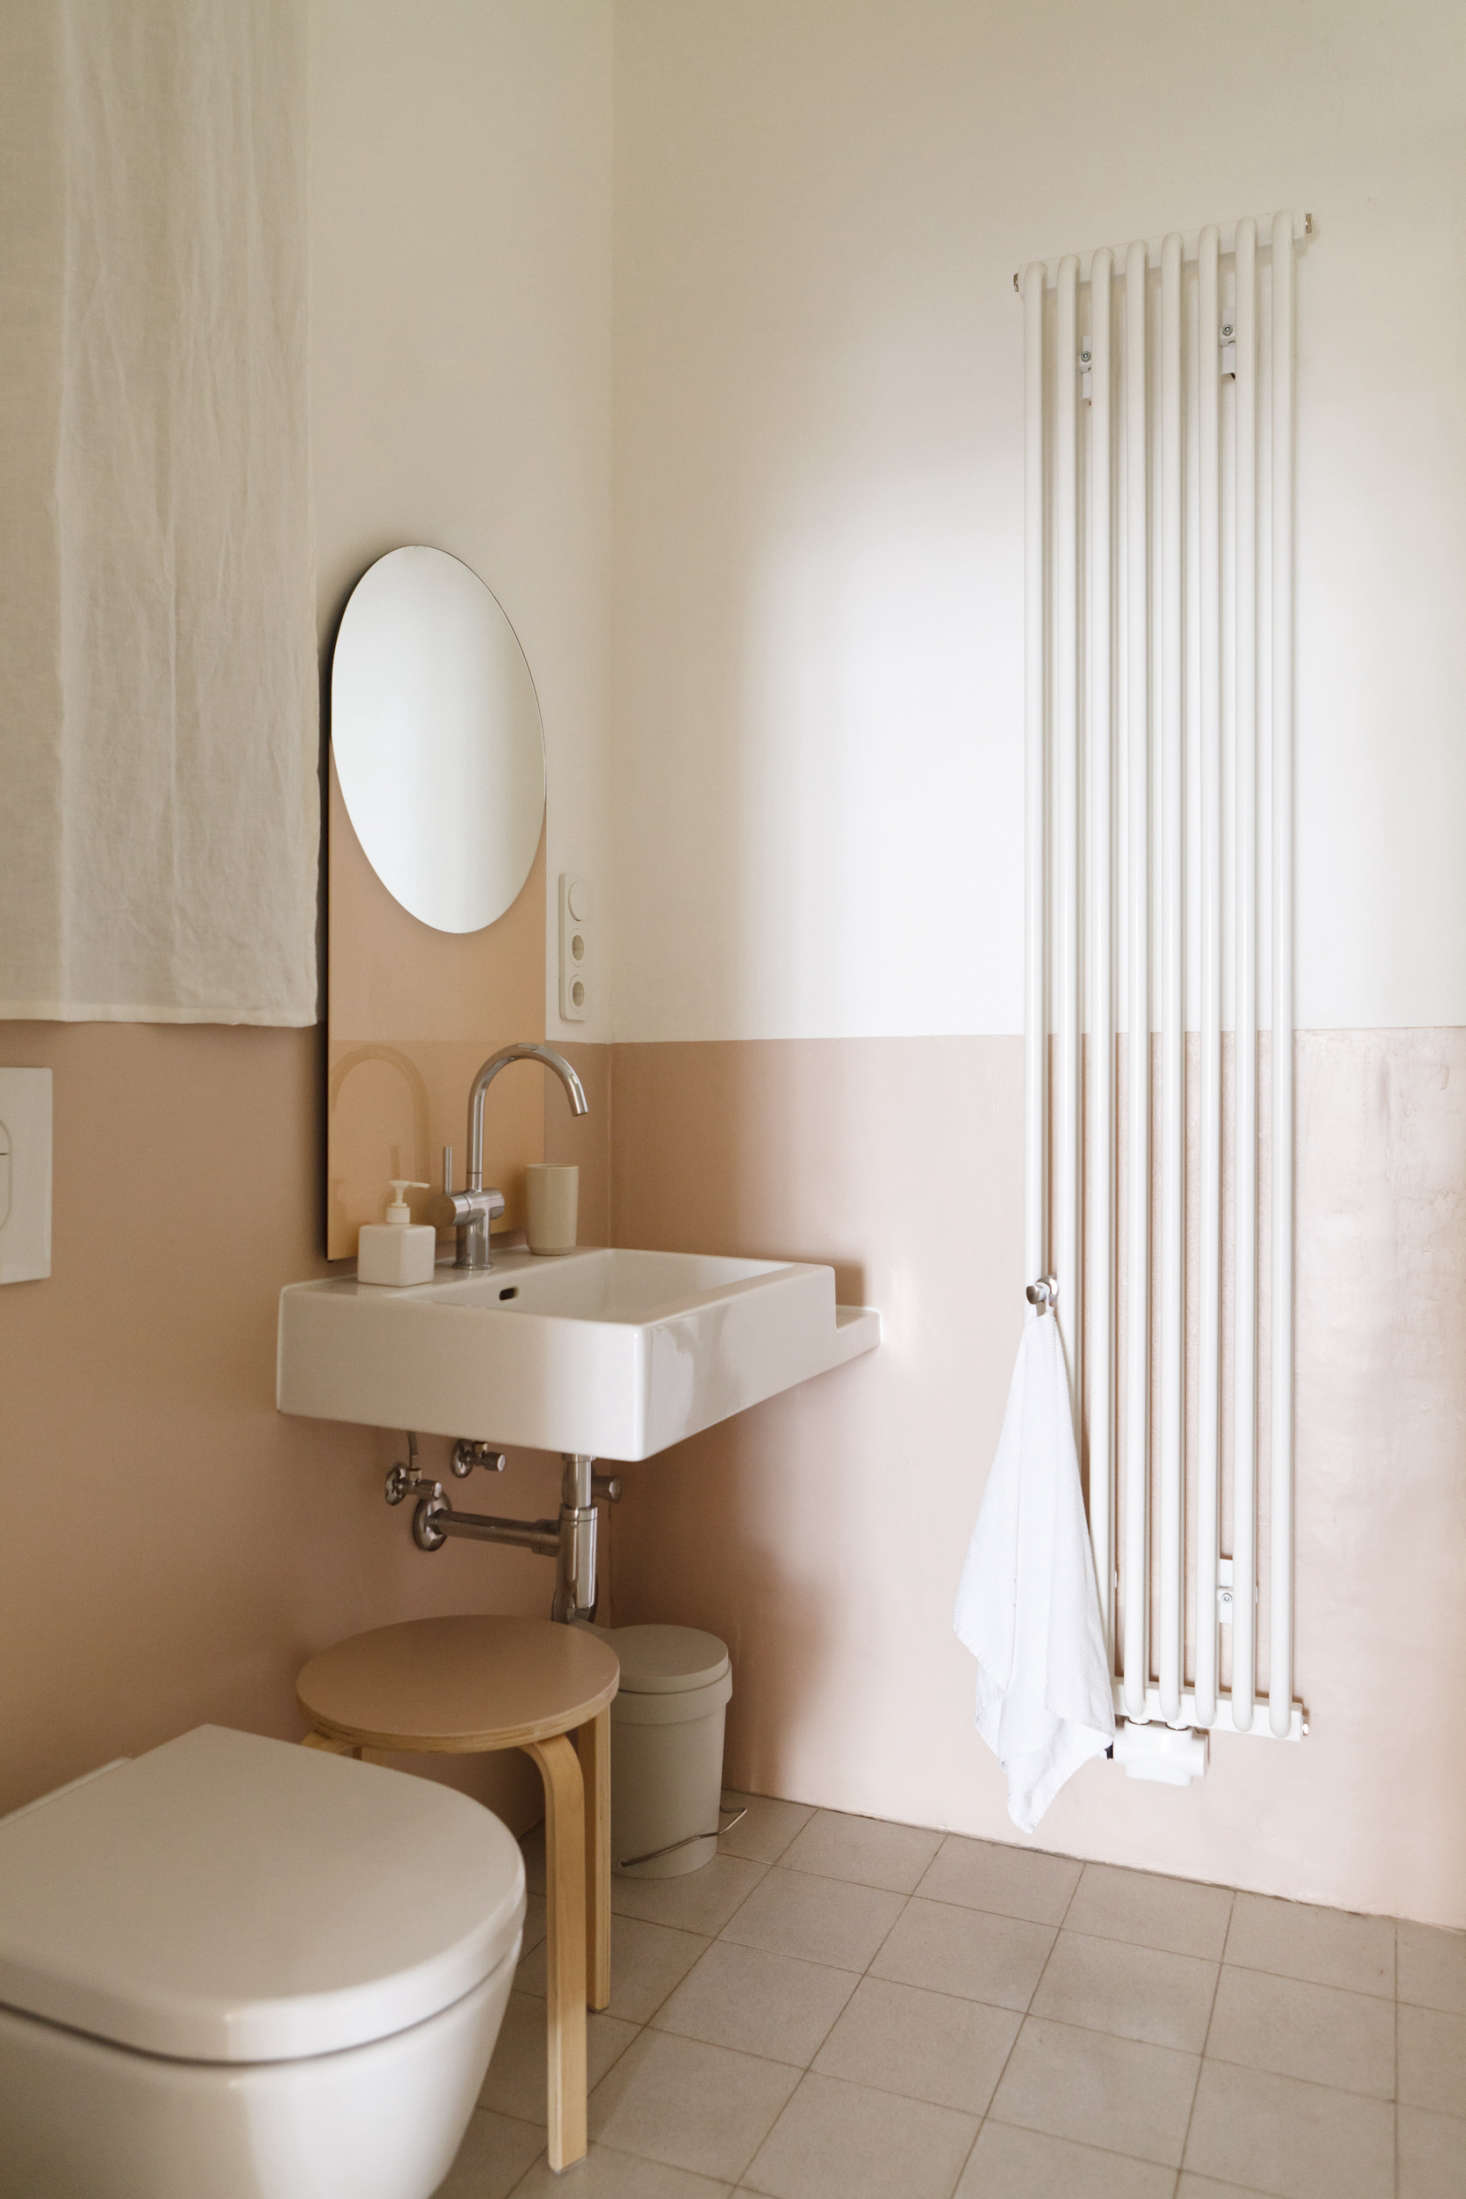 In a Berlin apartment, designers Studio Oink painted the lower half of the bathroom wall in rose.